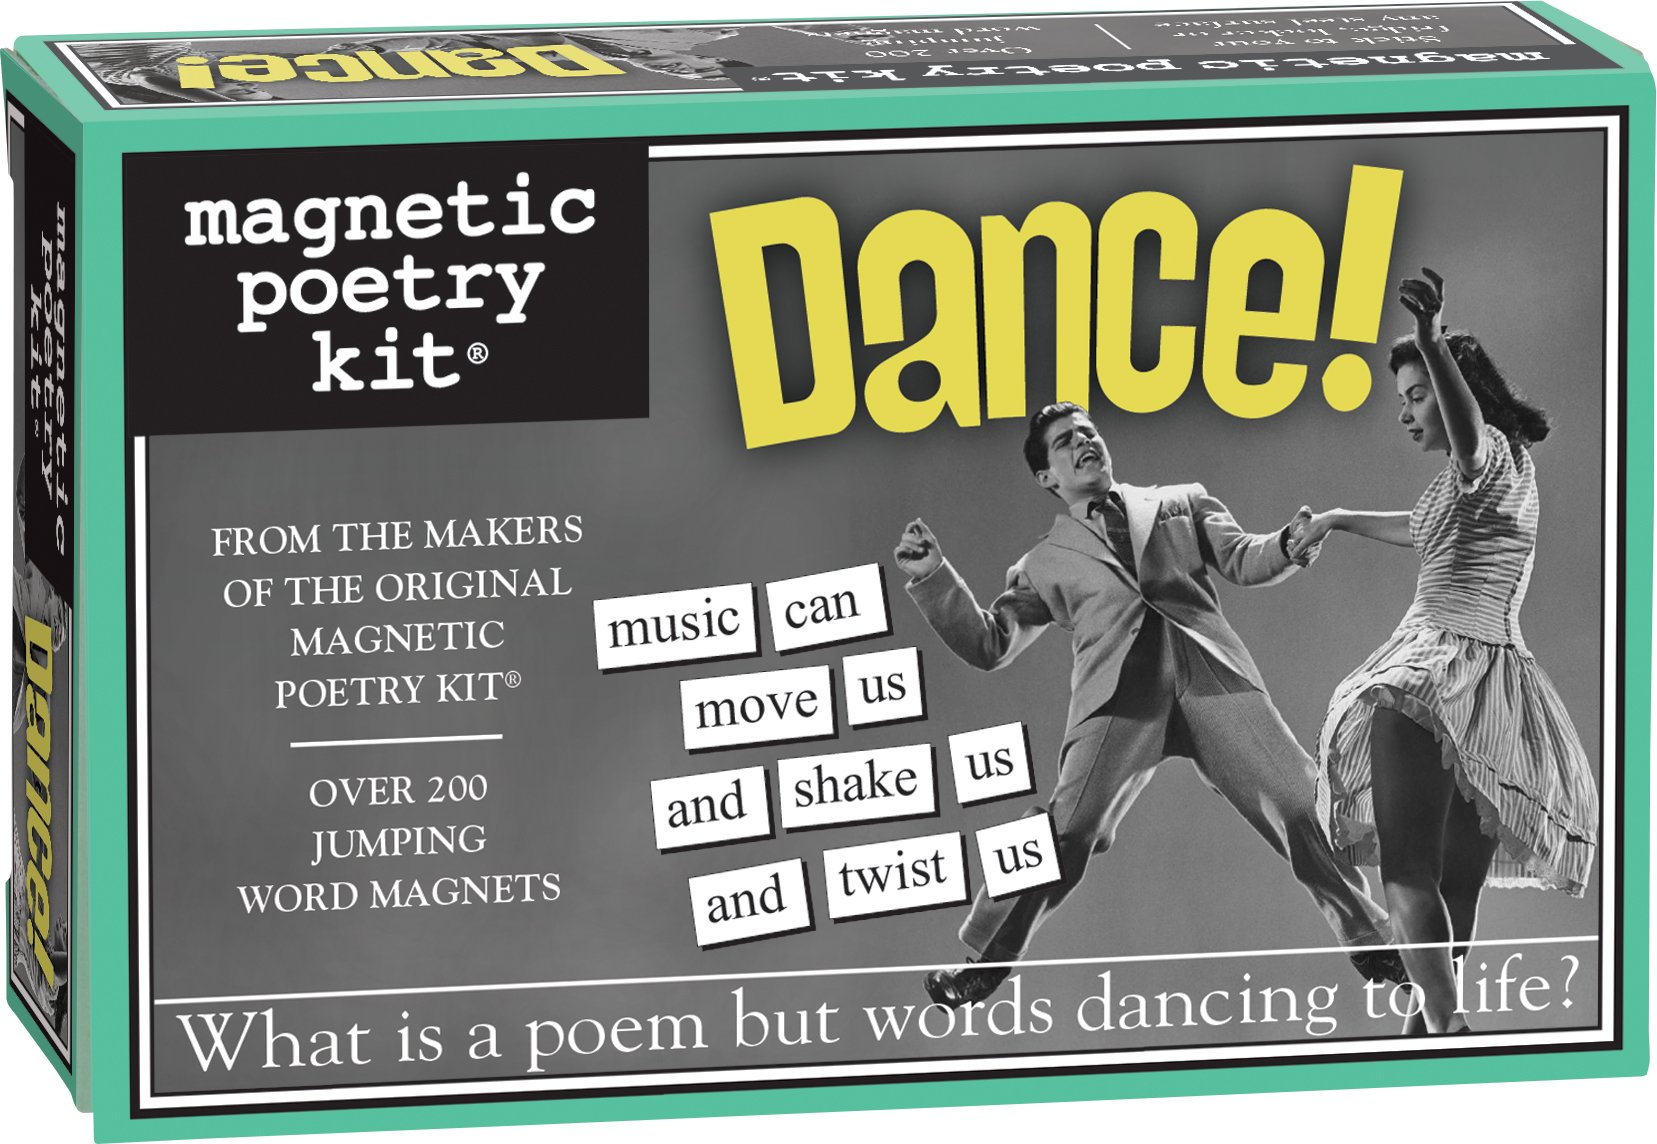 Magnetic Poetry - Dance! Kit - Words for Refrigerator - Write Poems and Letters on The Fridge - Made in The USA